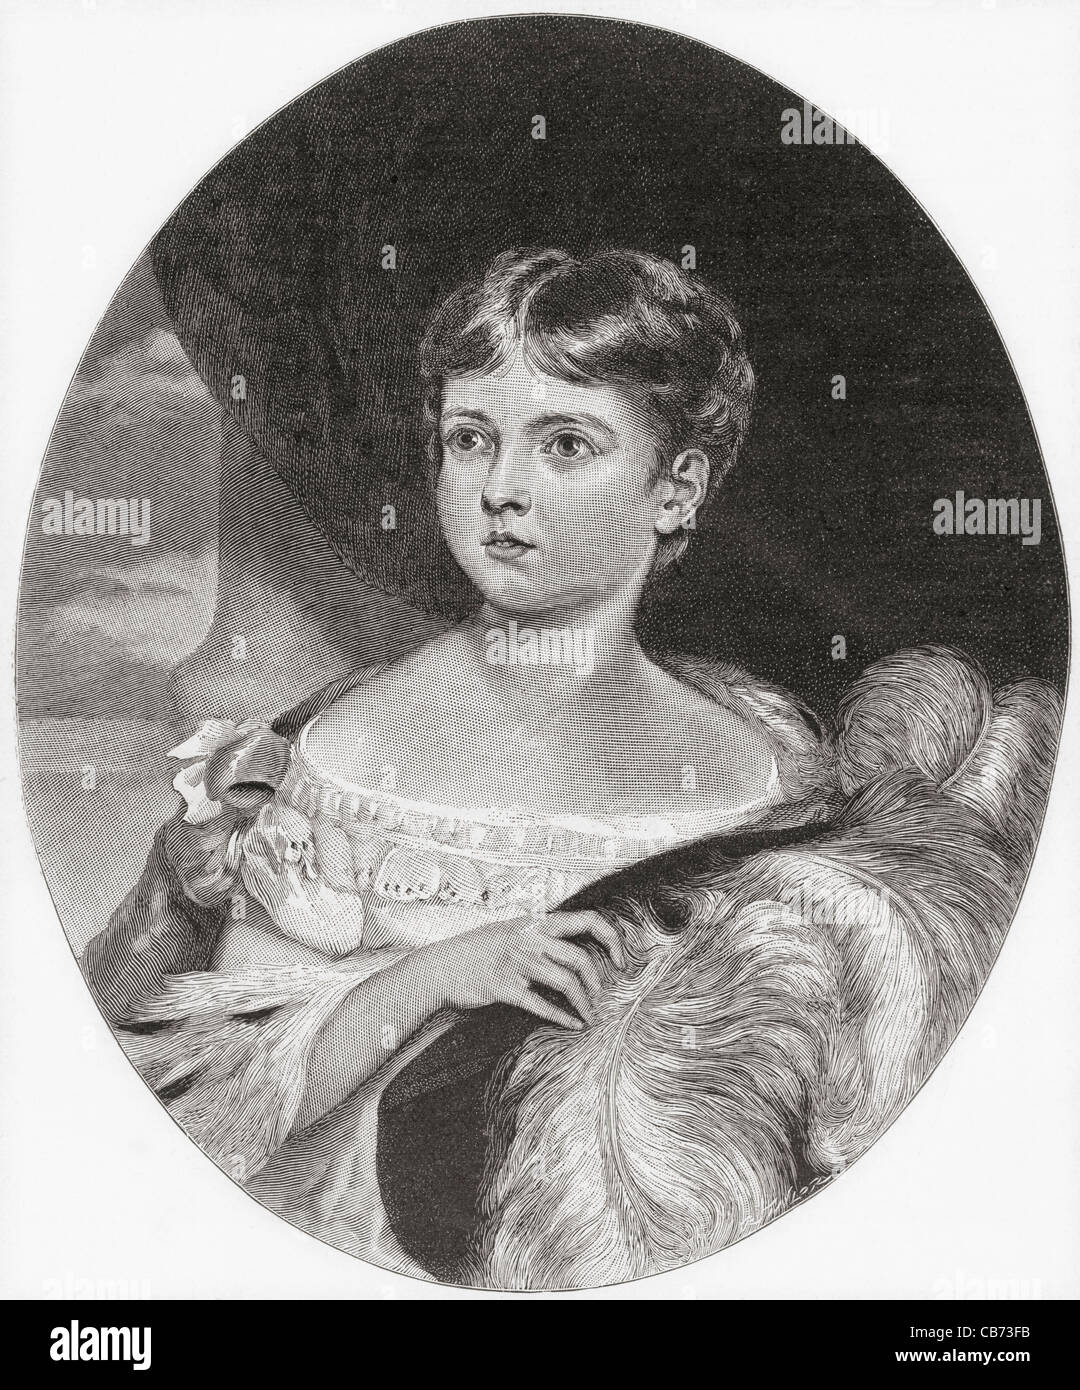 Queen Victoria, aged 11, 1819 – 1901. Queen of the United Kingdom and Ireland and Empress of India. - Stock Image